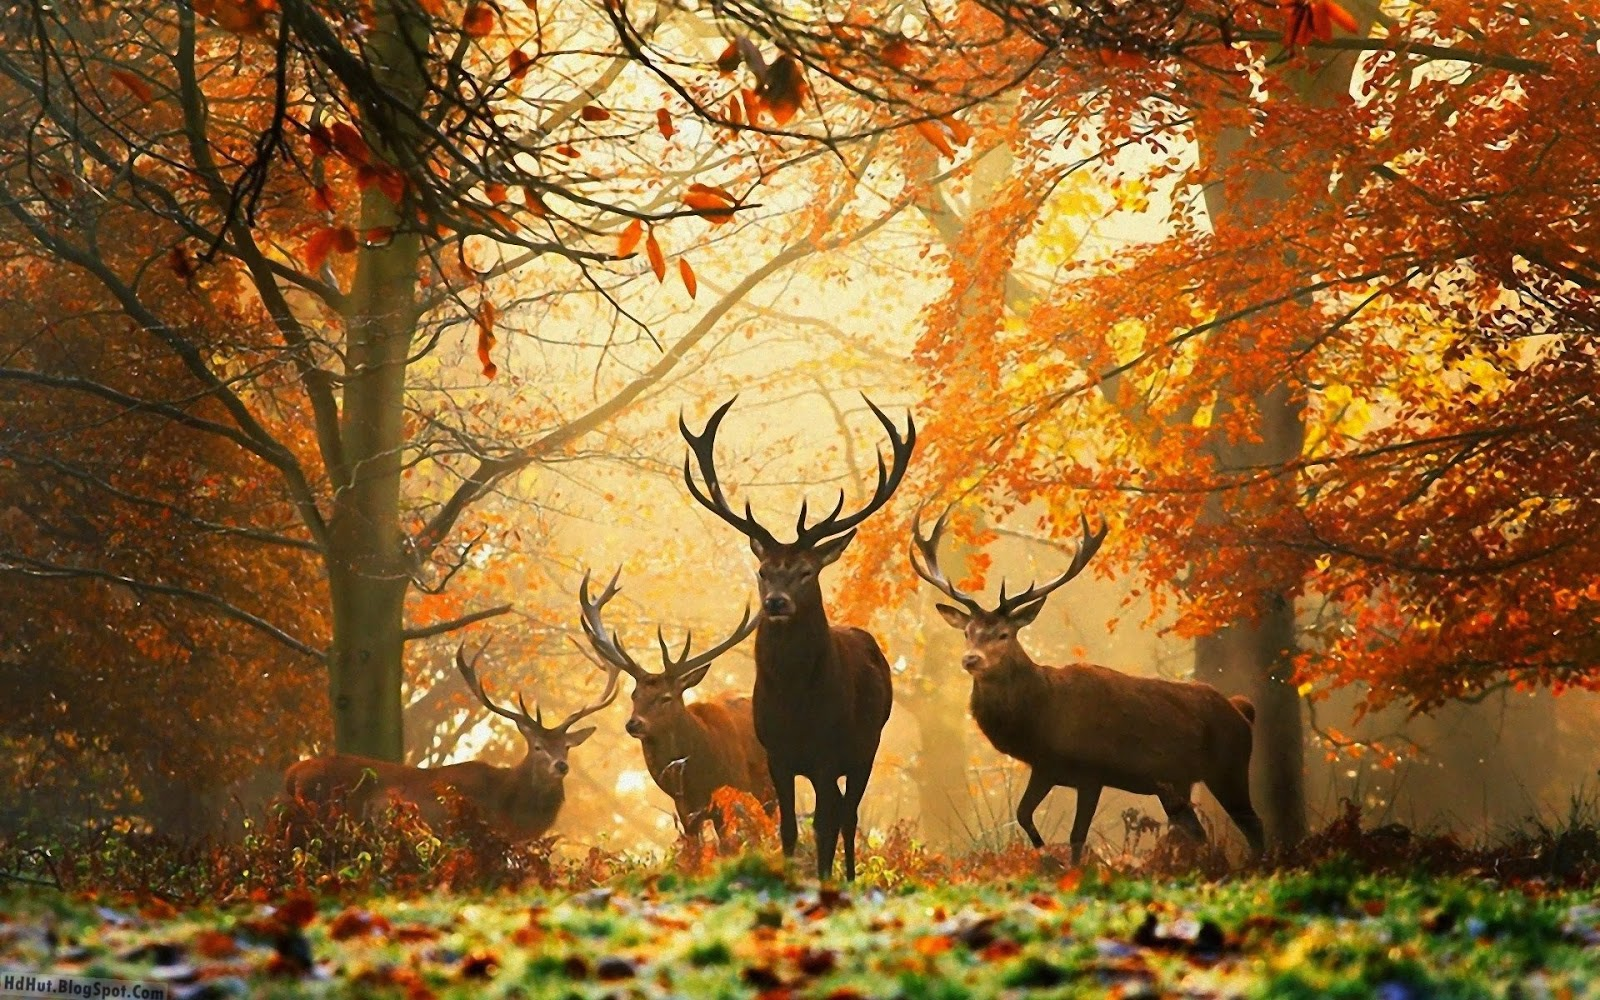 http://hdhut.blogspot.com/2014/02/top-14-beautiful-deer-wallpapers-in-hd.html